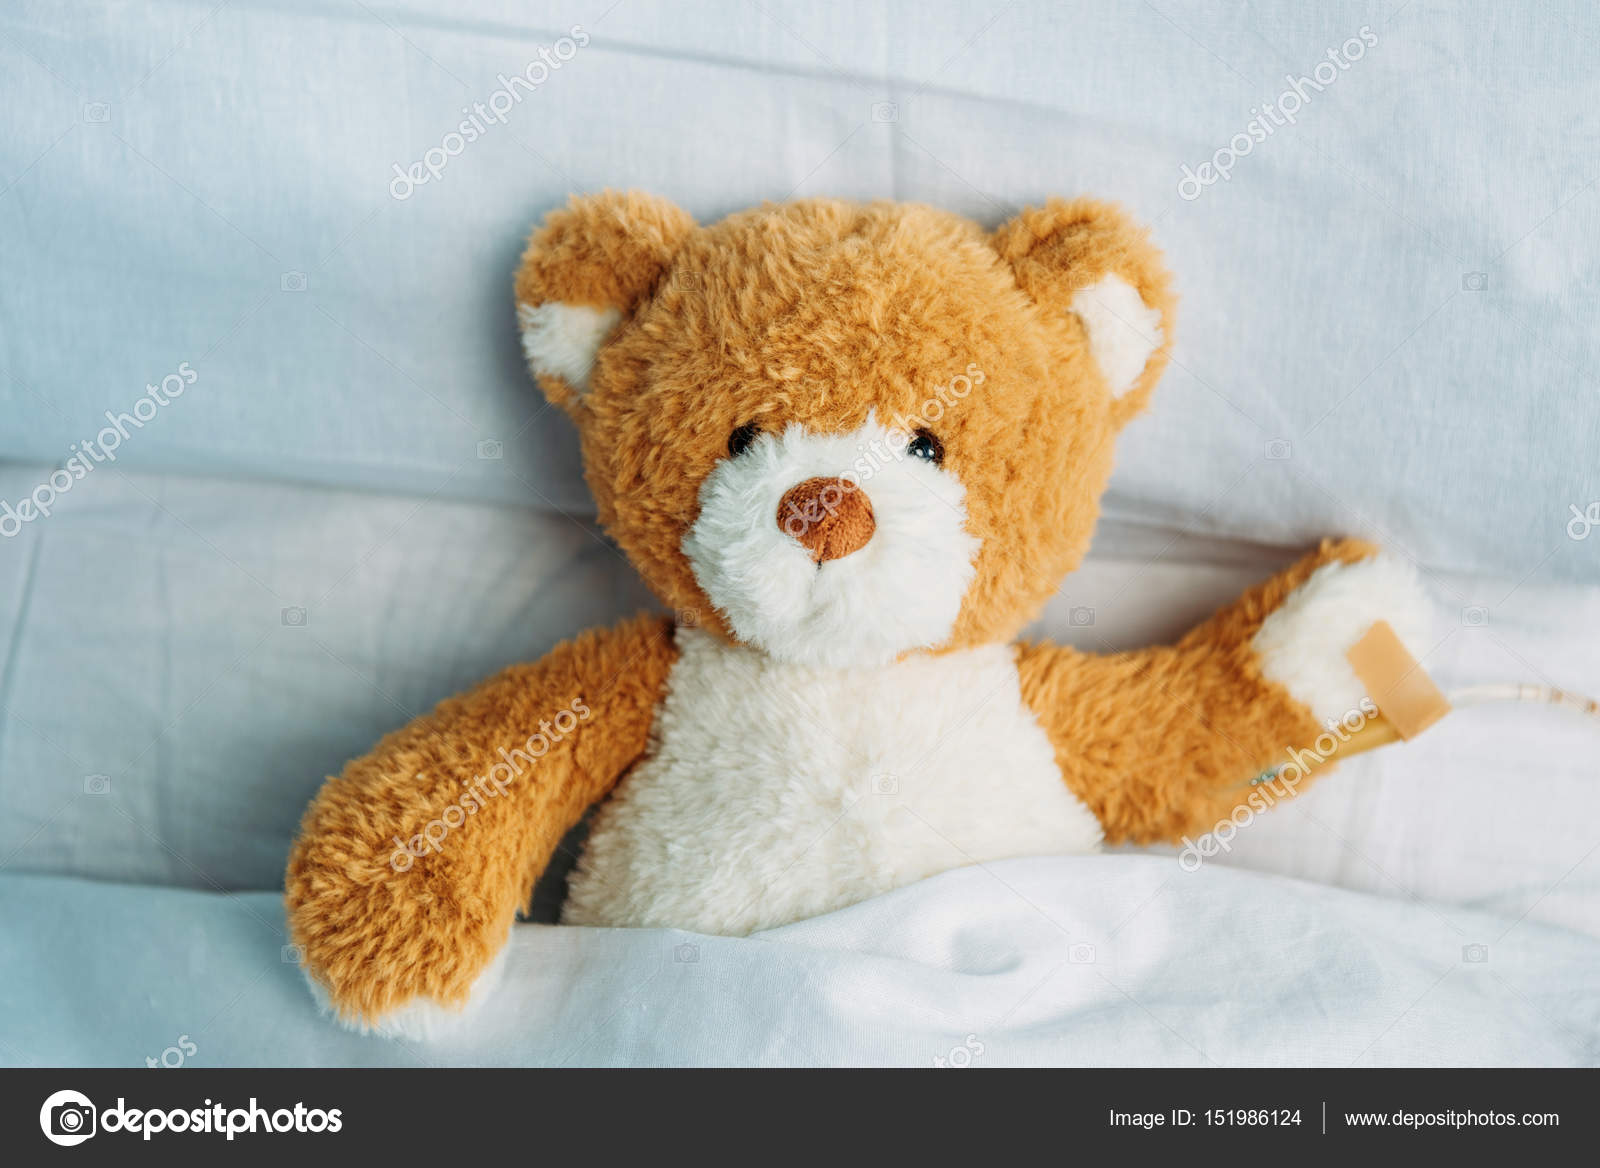 Teddy bear in bed stock photo alexlipa 151986124 close up view of cute teddy bear toy lying in bed with drop counter photo by alexlipa altavistaventures Choice Image